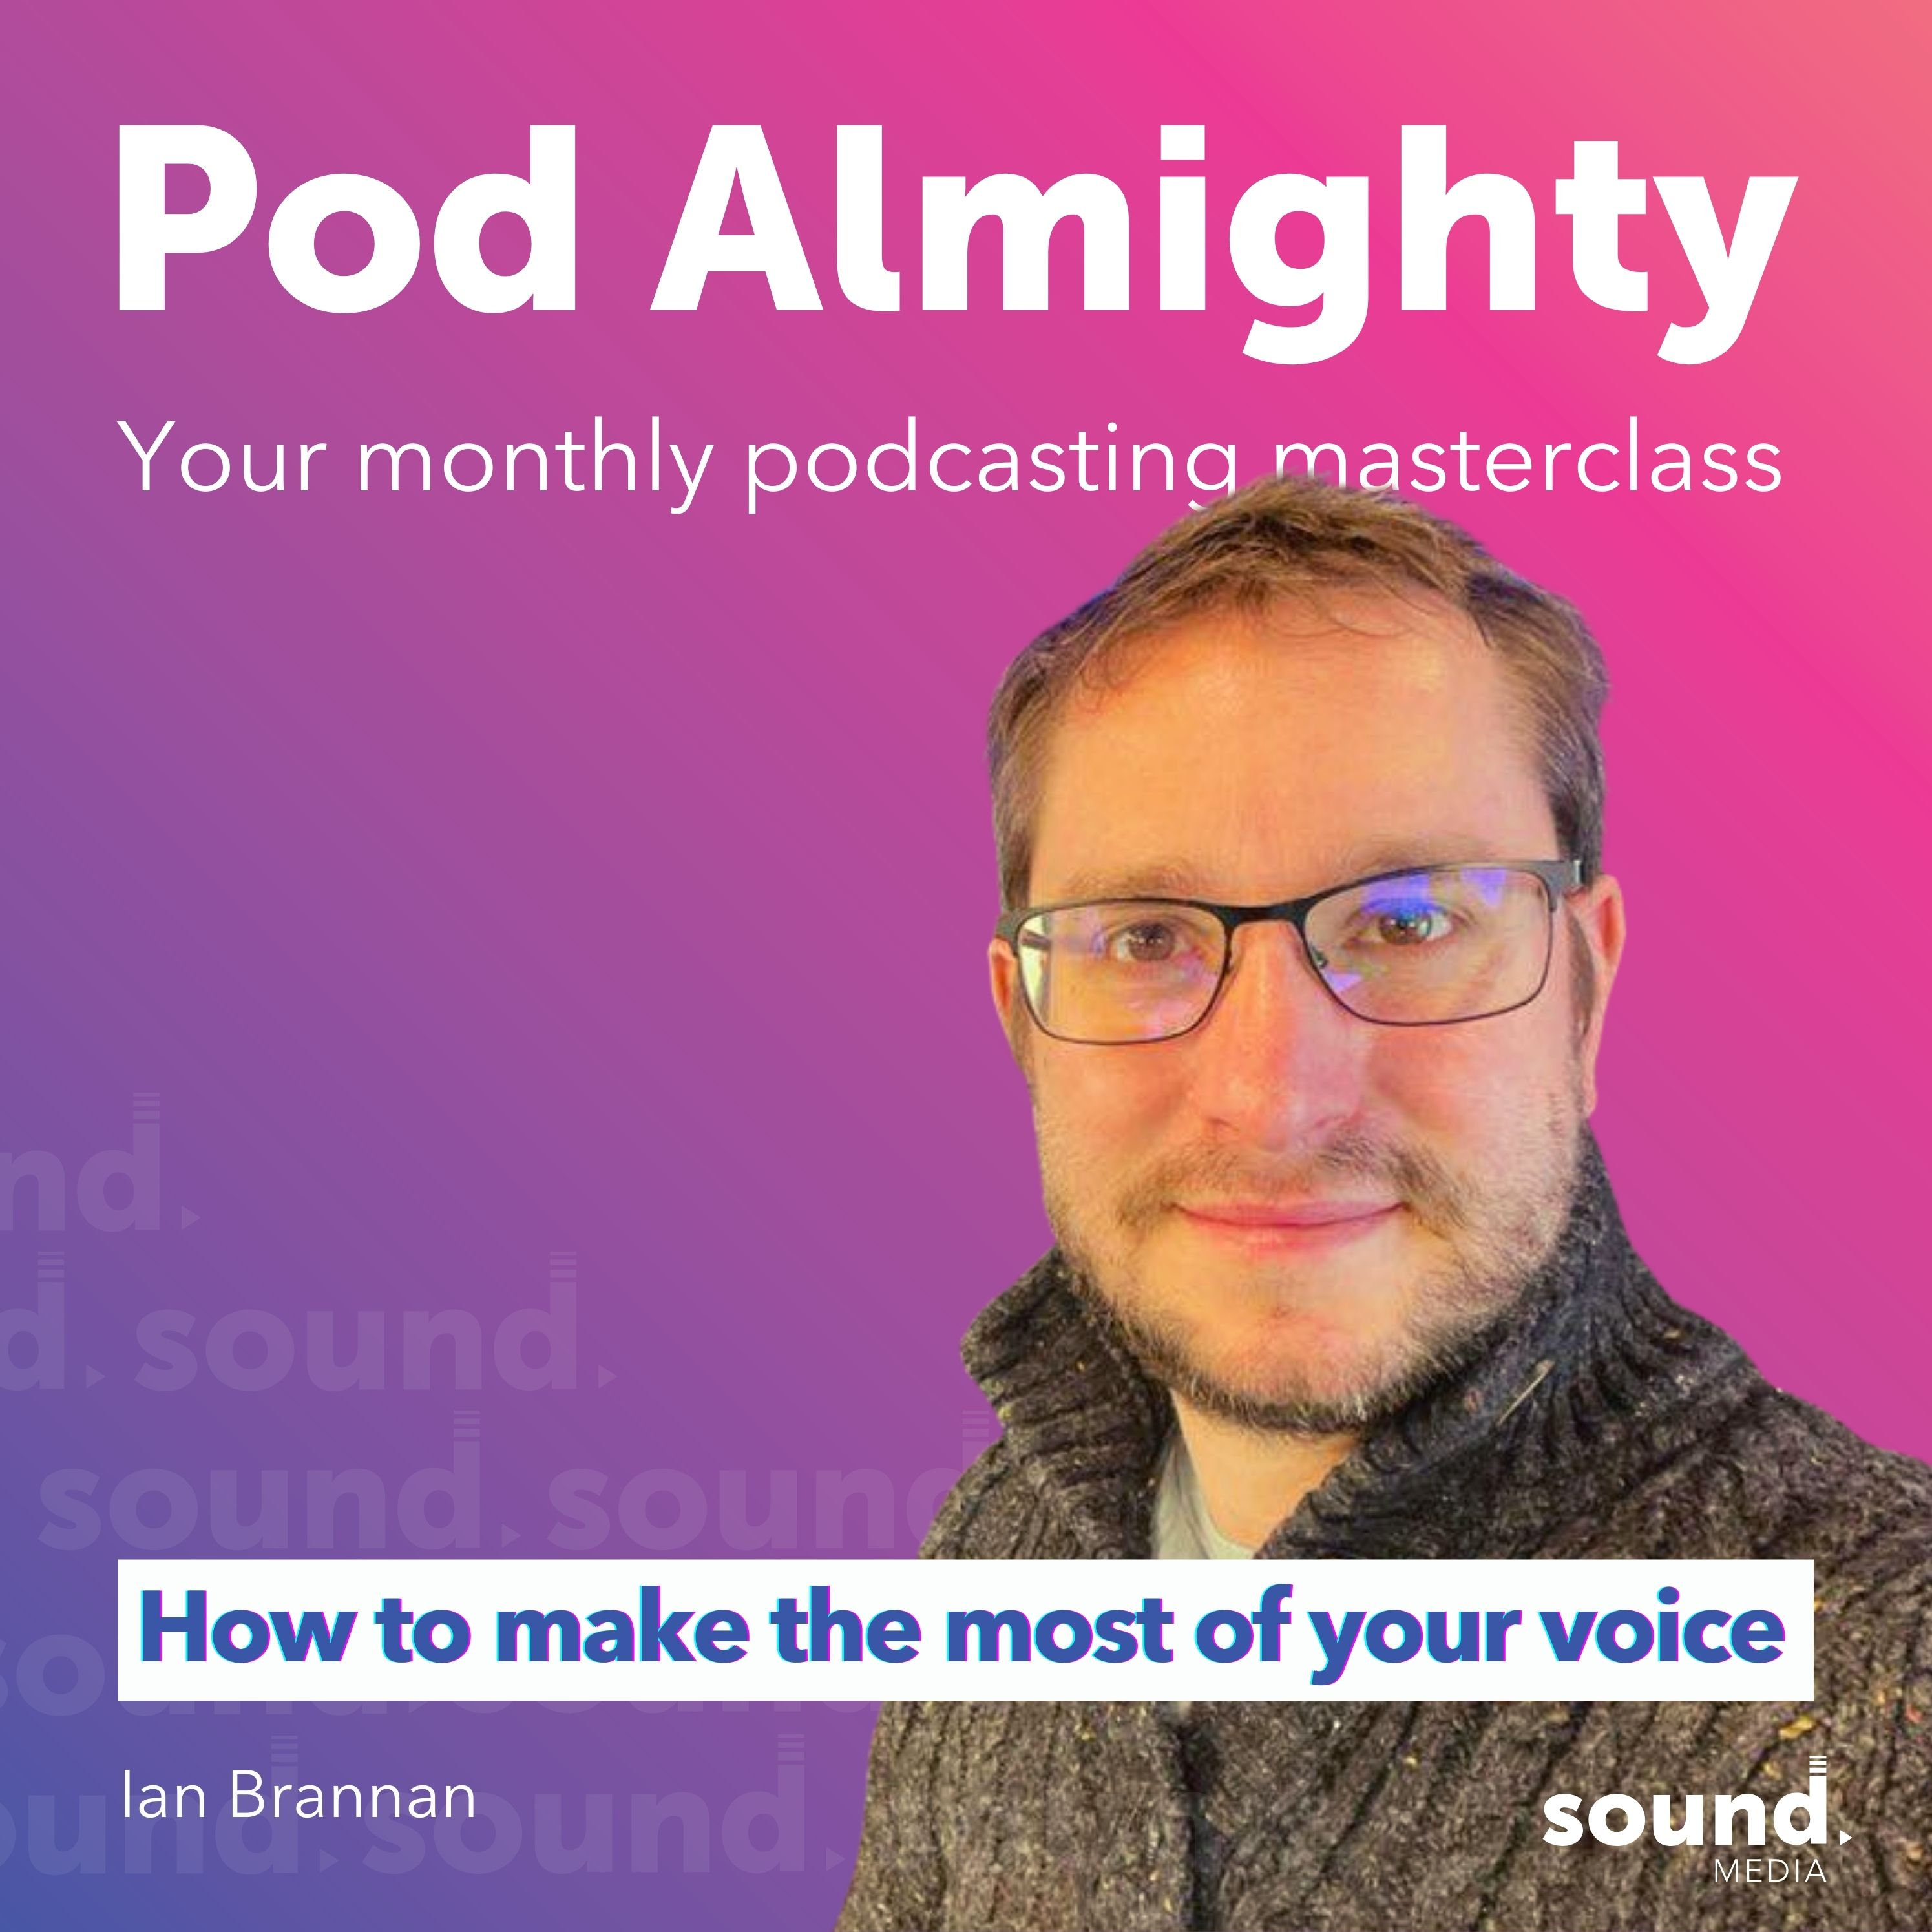 Artwork for podcast Pod Almighty